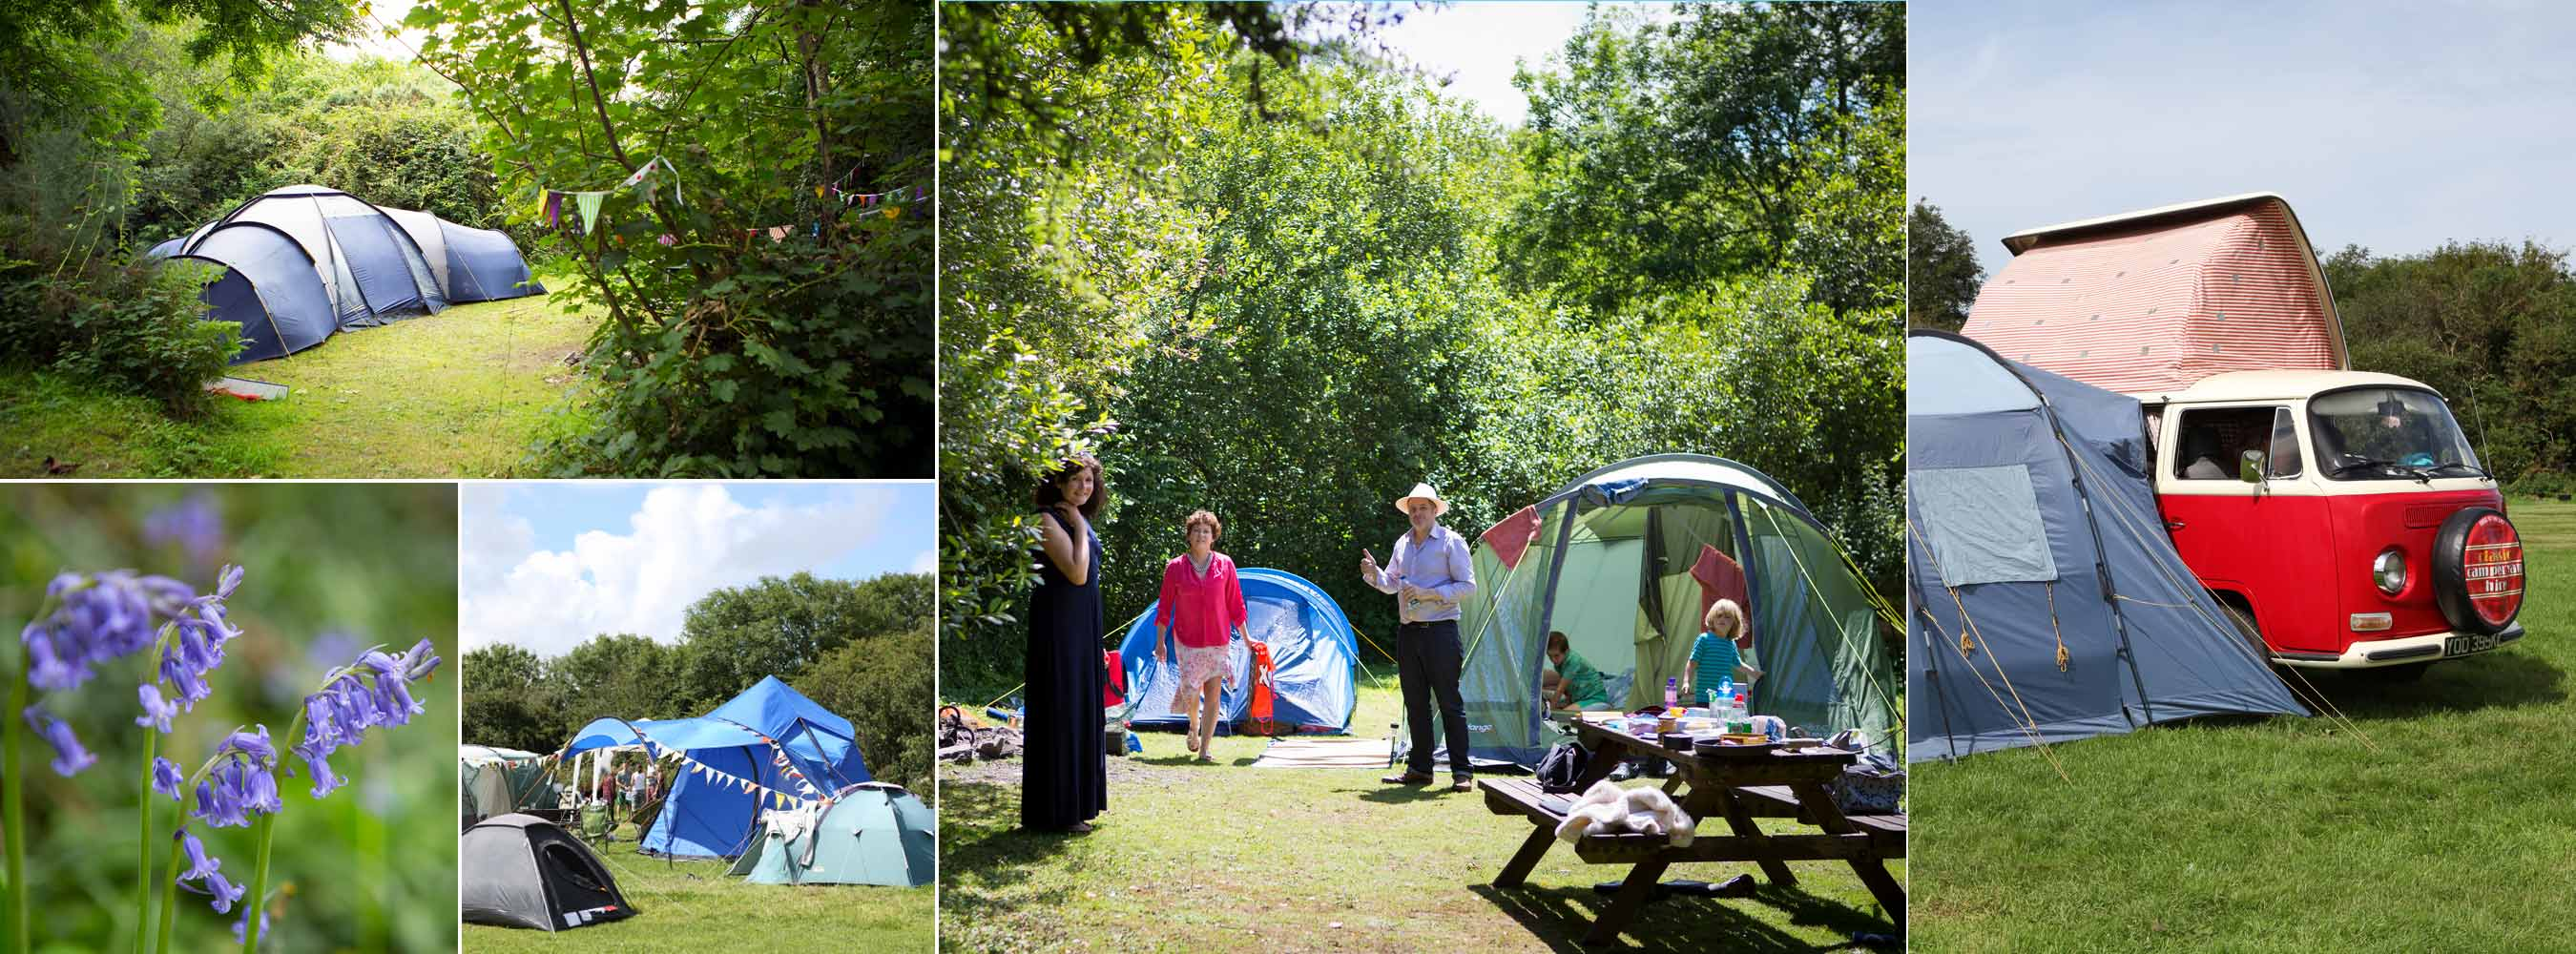 Wild Camping for Guests, bring your own tent or campervan